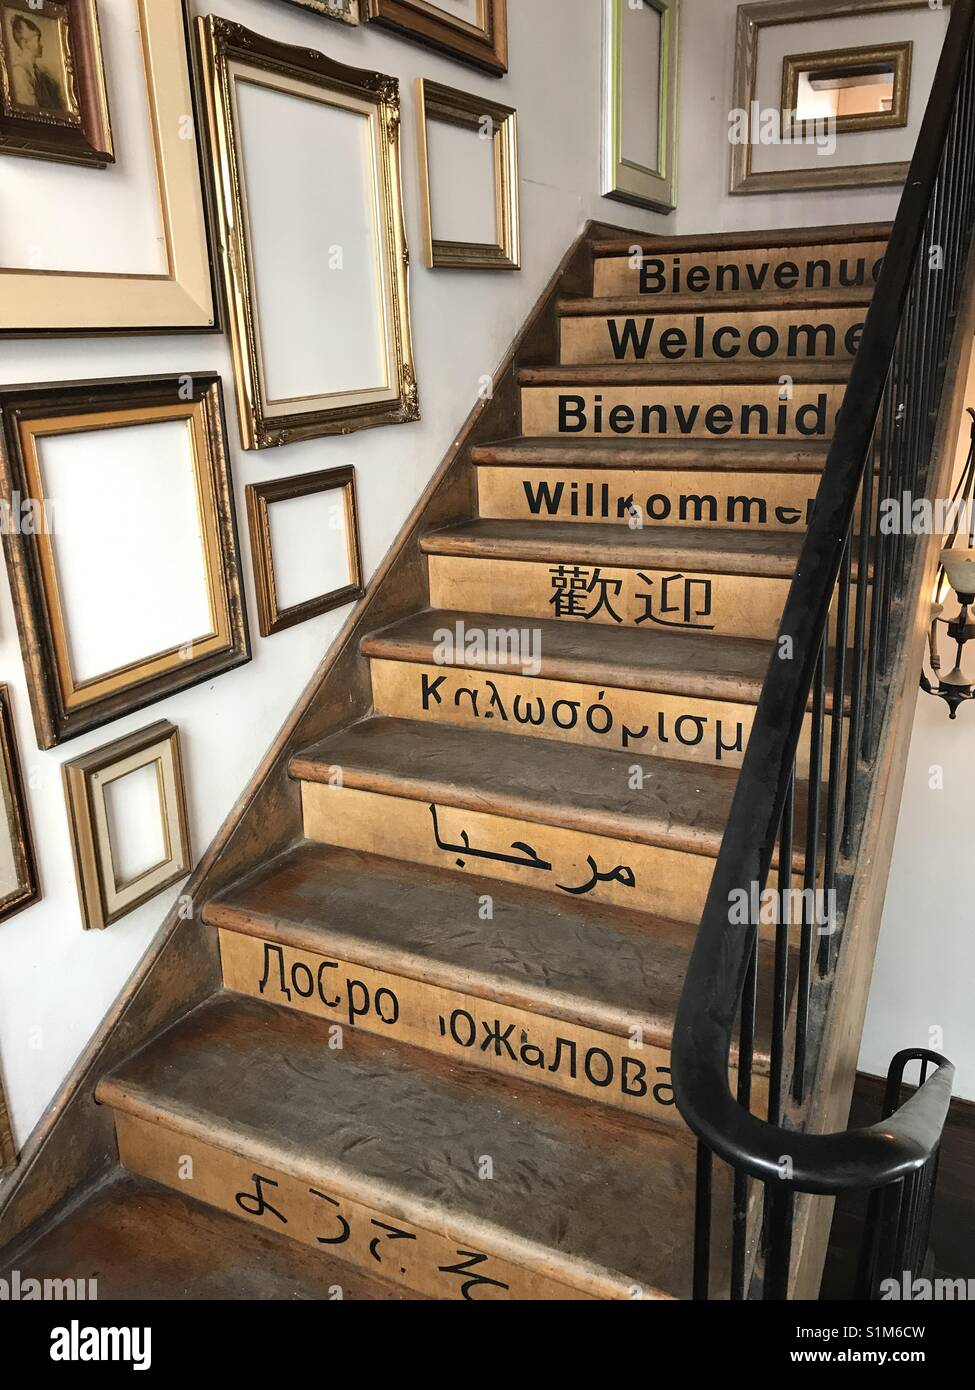 Welcome staircase in many languages - Stock Image